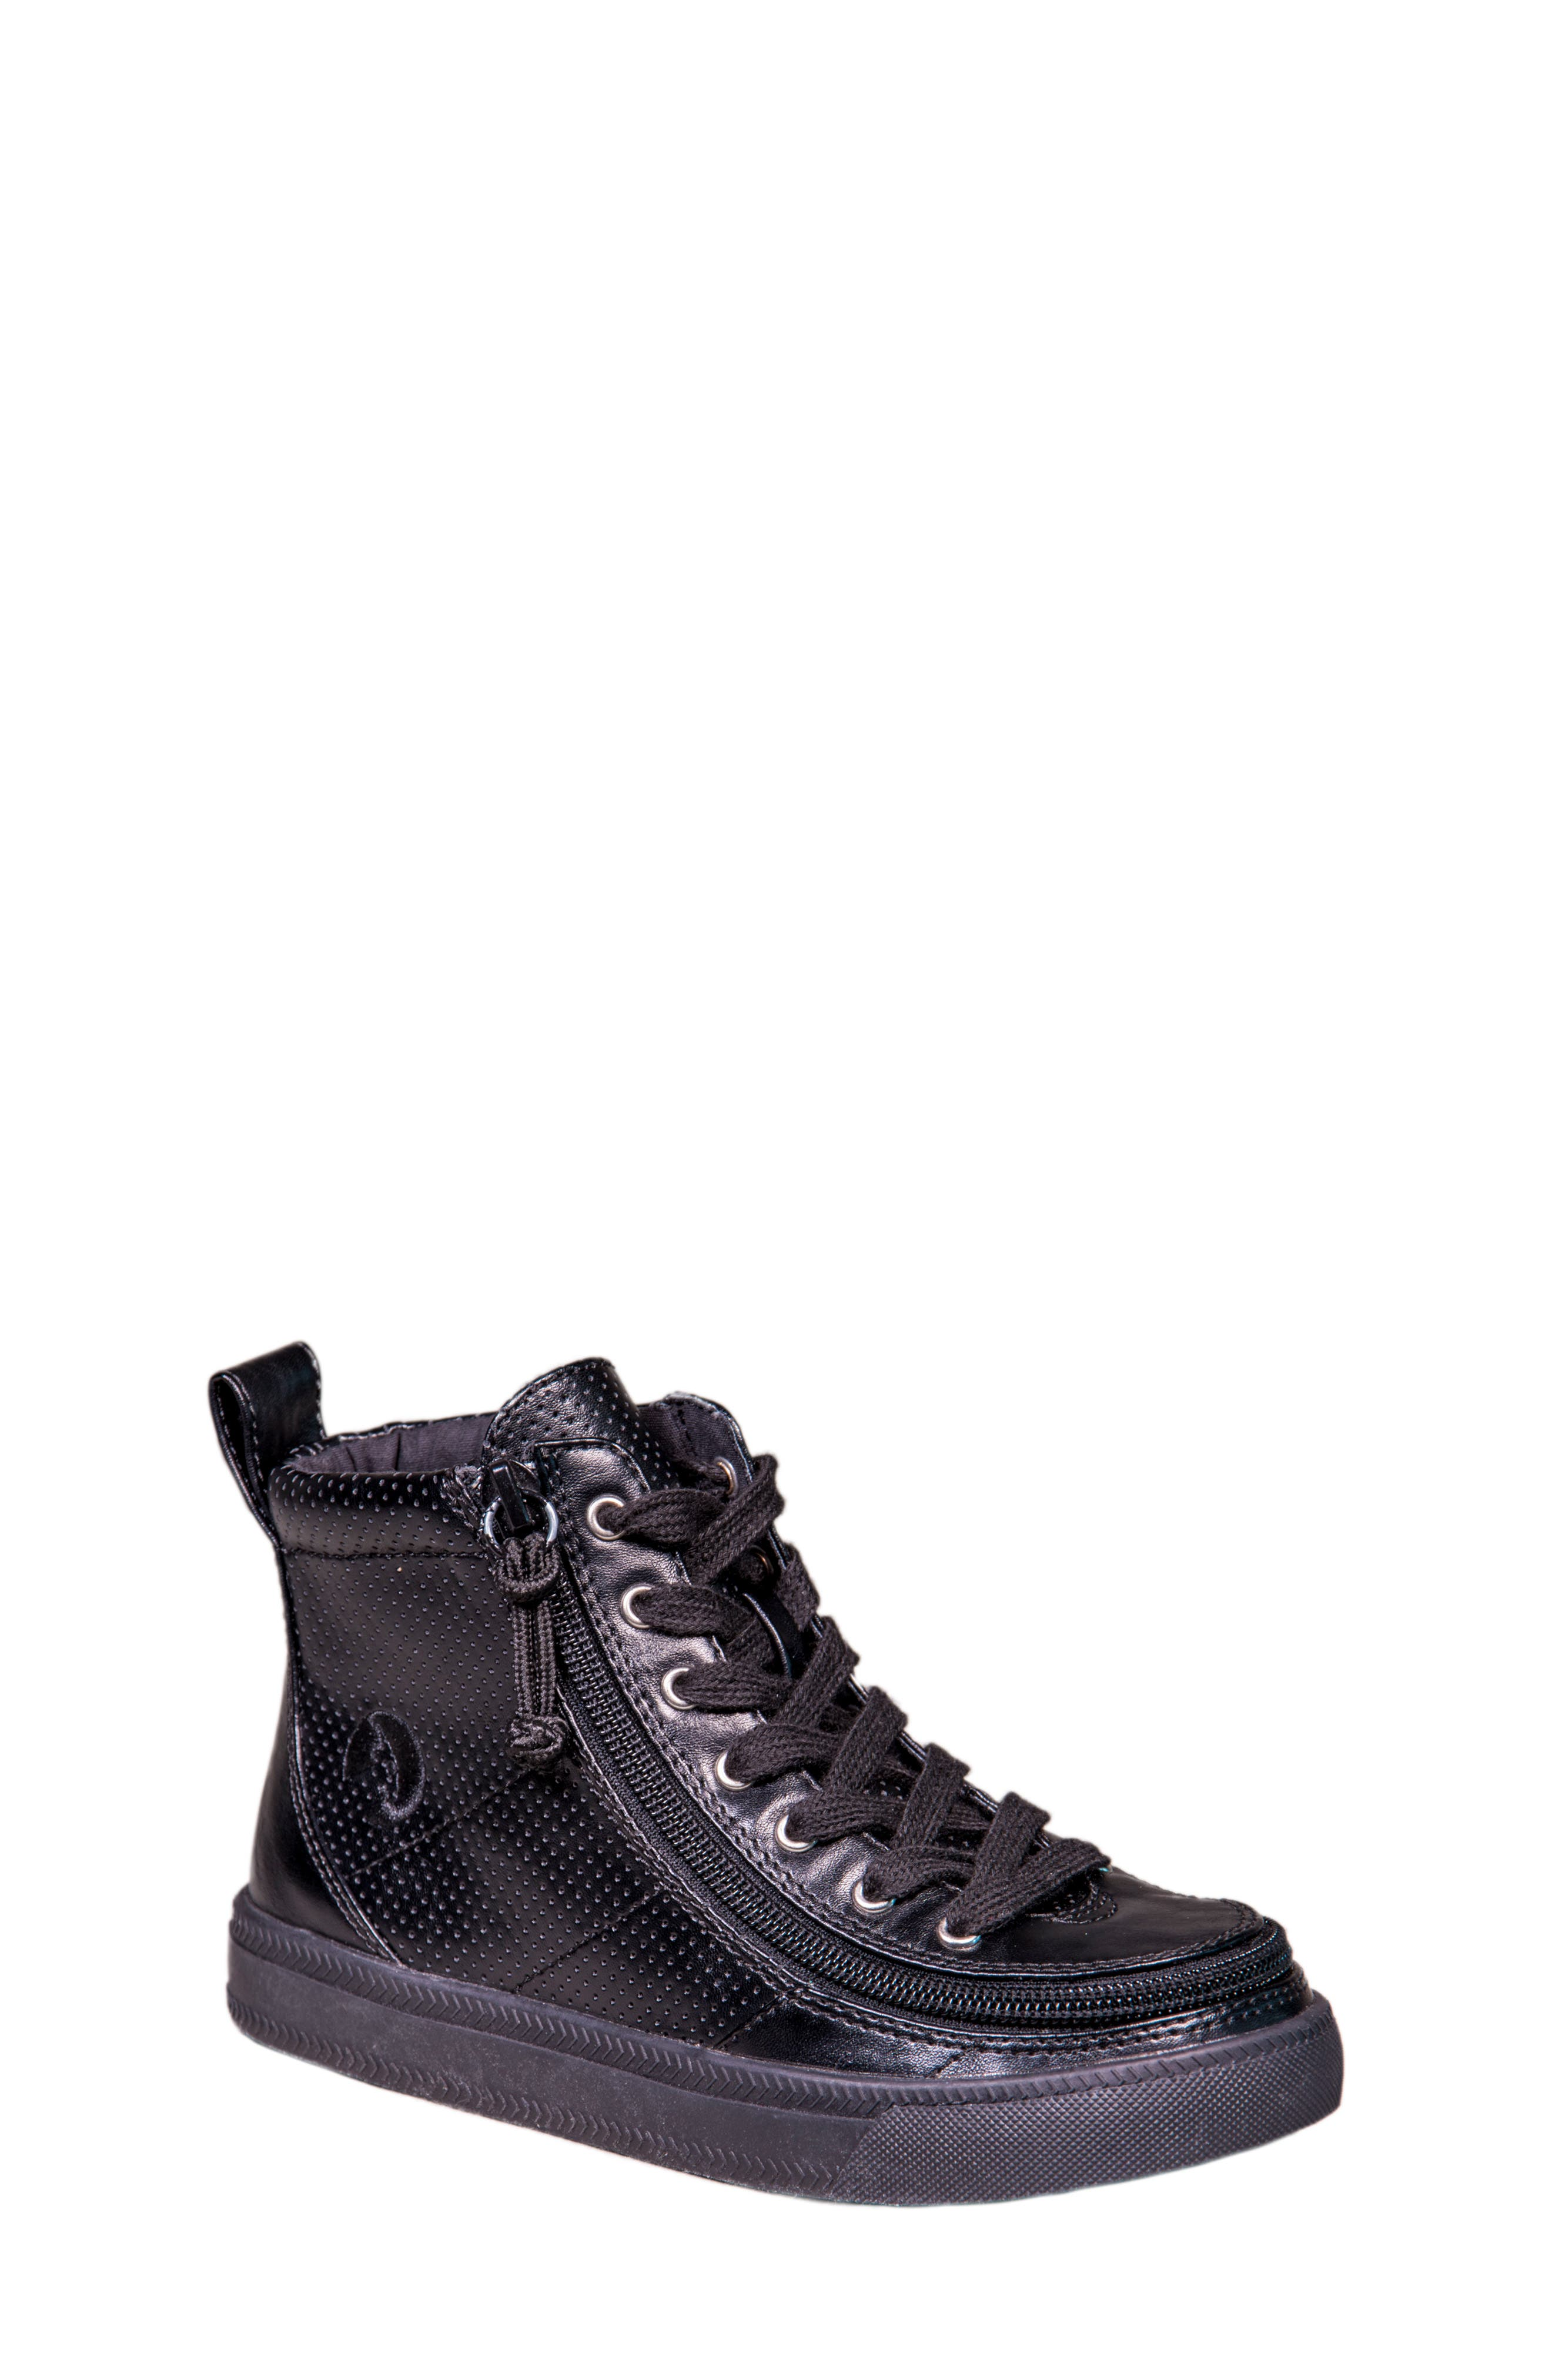 Zip Around Perforated High Top Sneaker,                         Main,                         color, Black Perforated